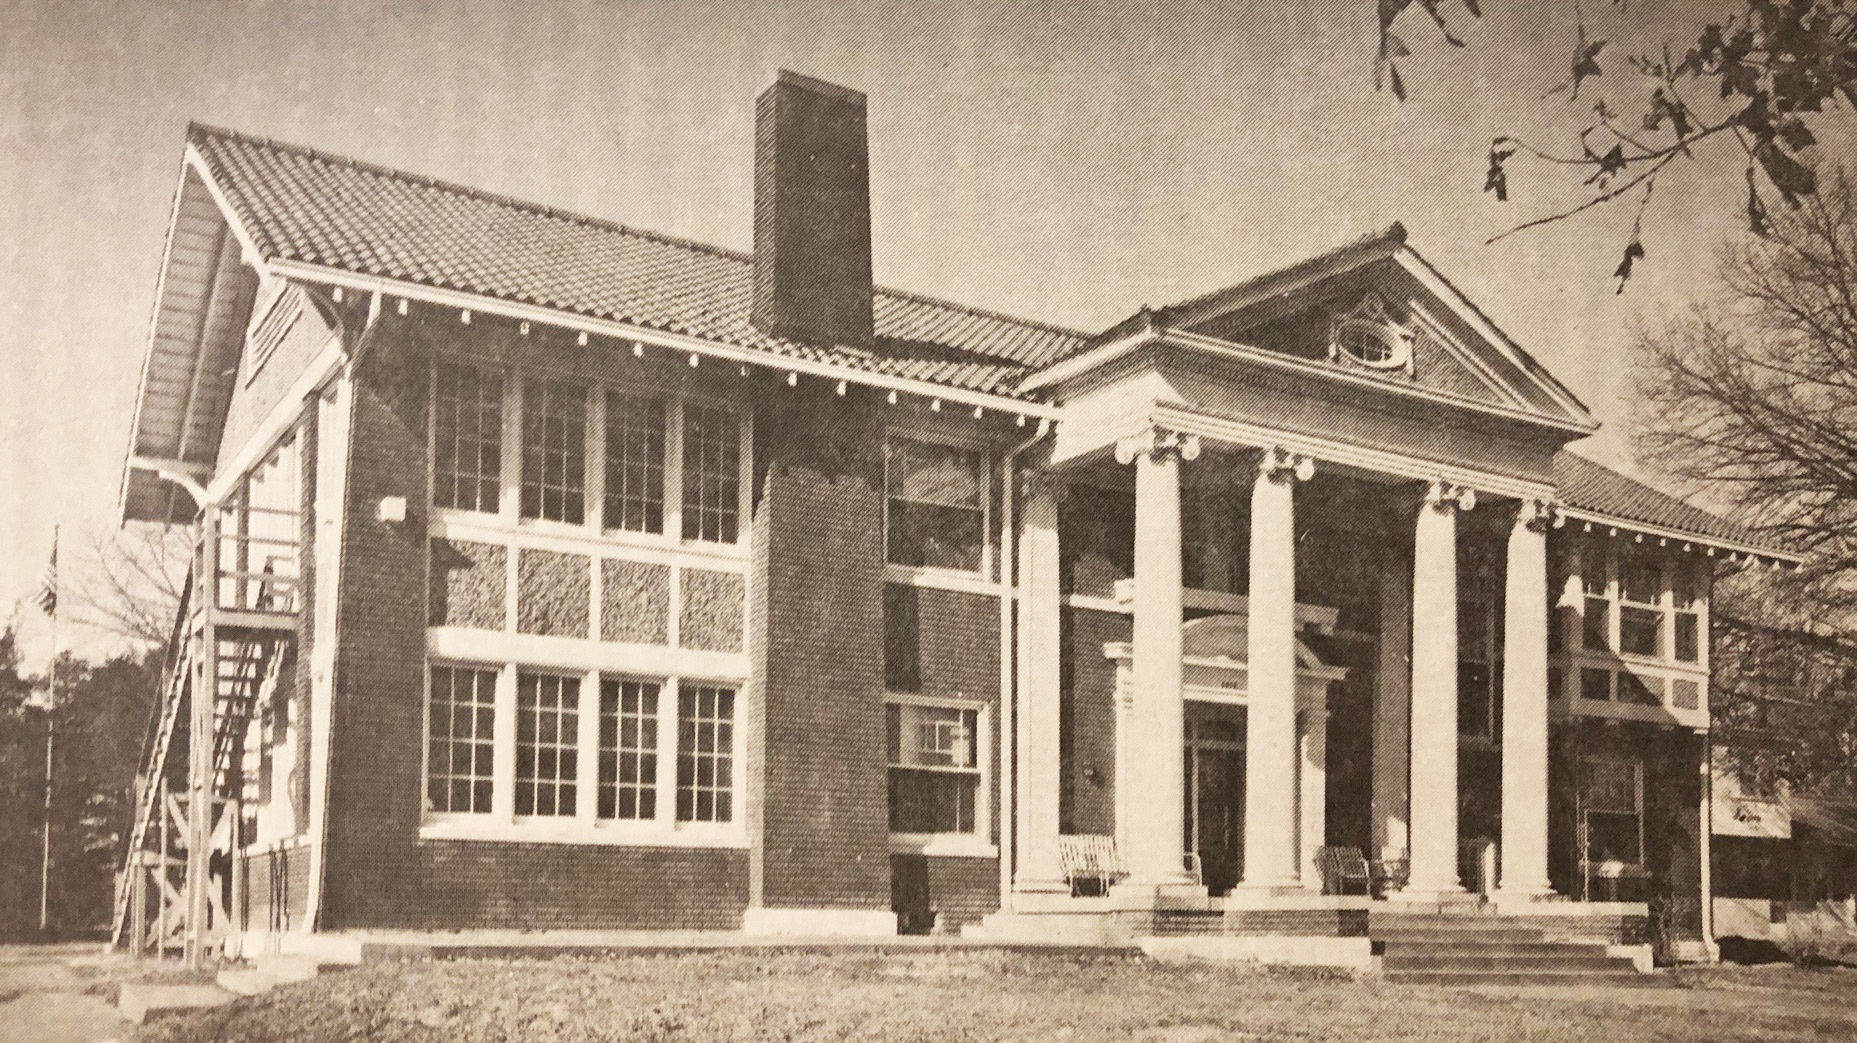 The Brack Mansion, 1947. The house was the original home to Arkansas Enterprises for the Blind.